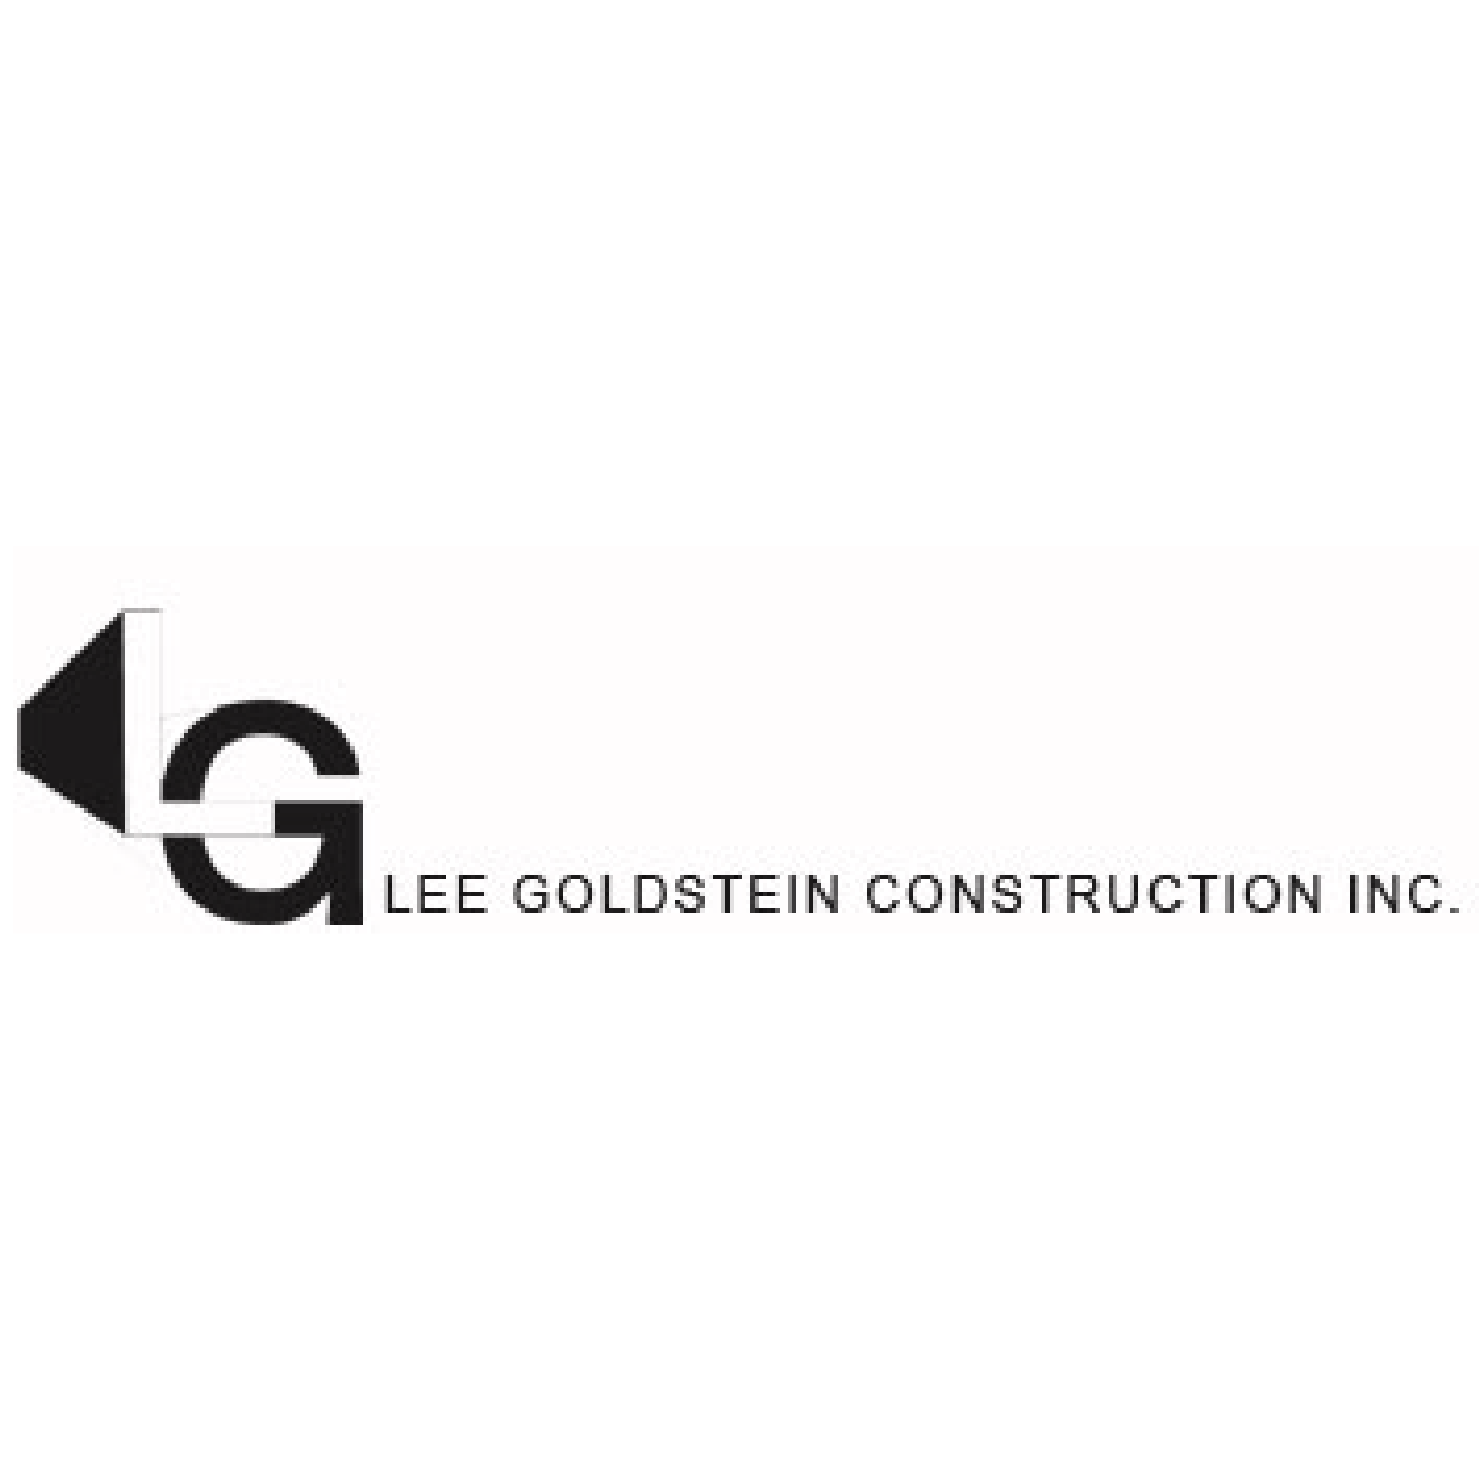 Lee Goldstein Construction Inc.